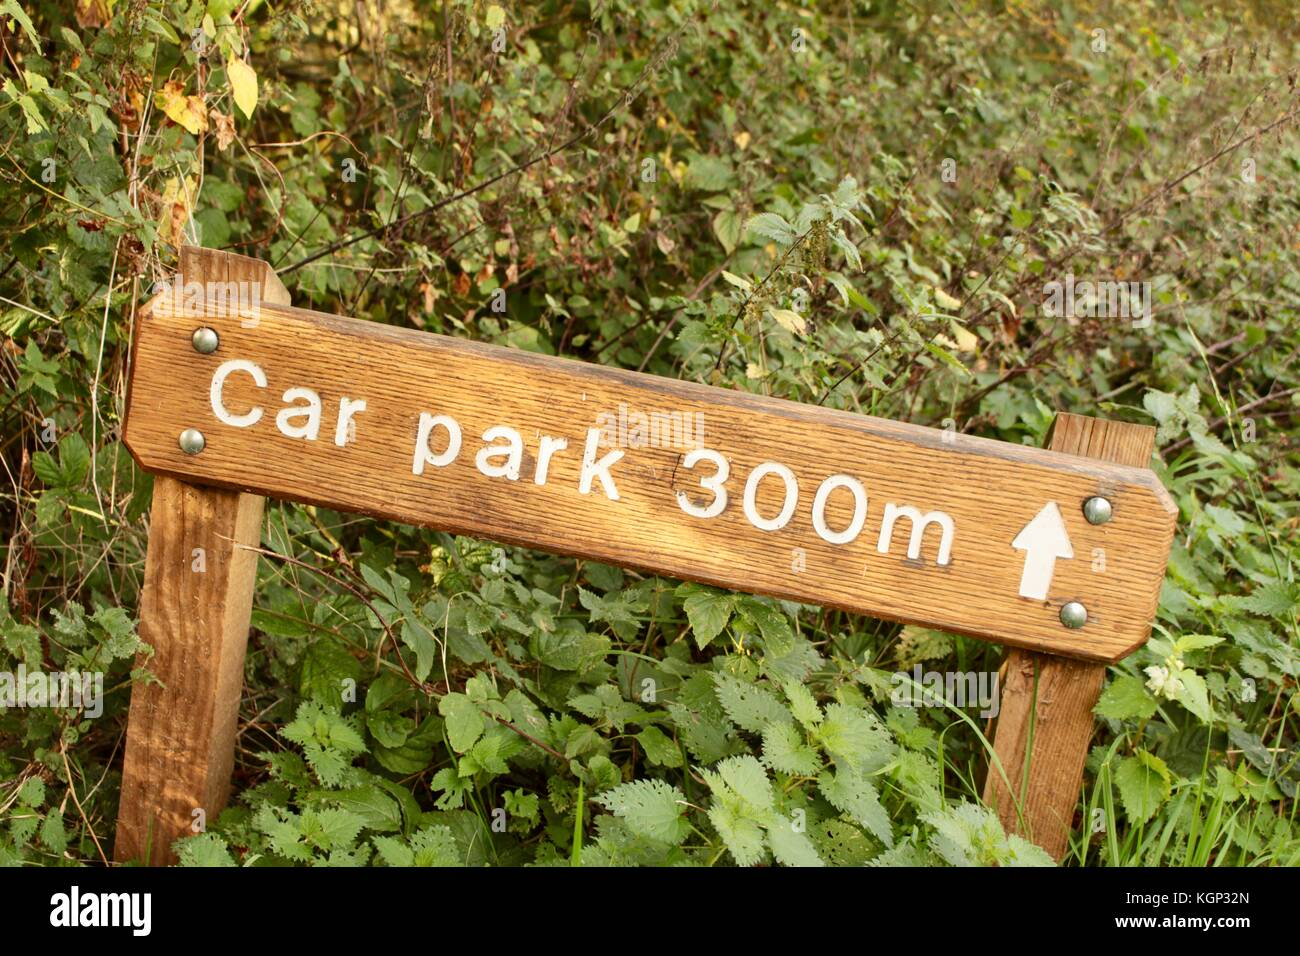 Car Park 300 m sign in white letters with an arrow on low wooden posts in grass verge surrounded by nettles next - Stock Image